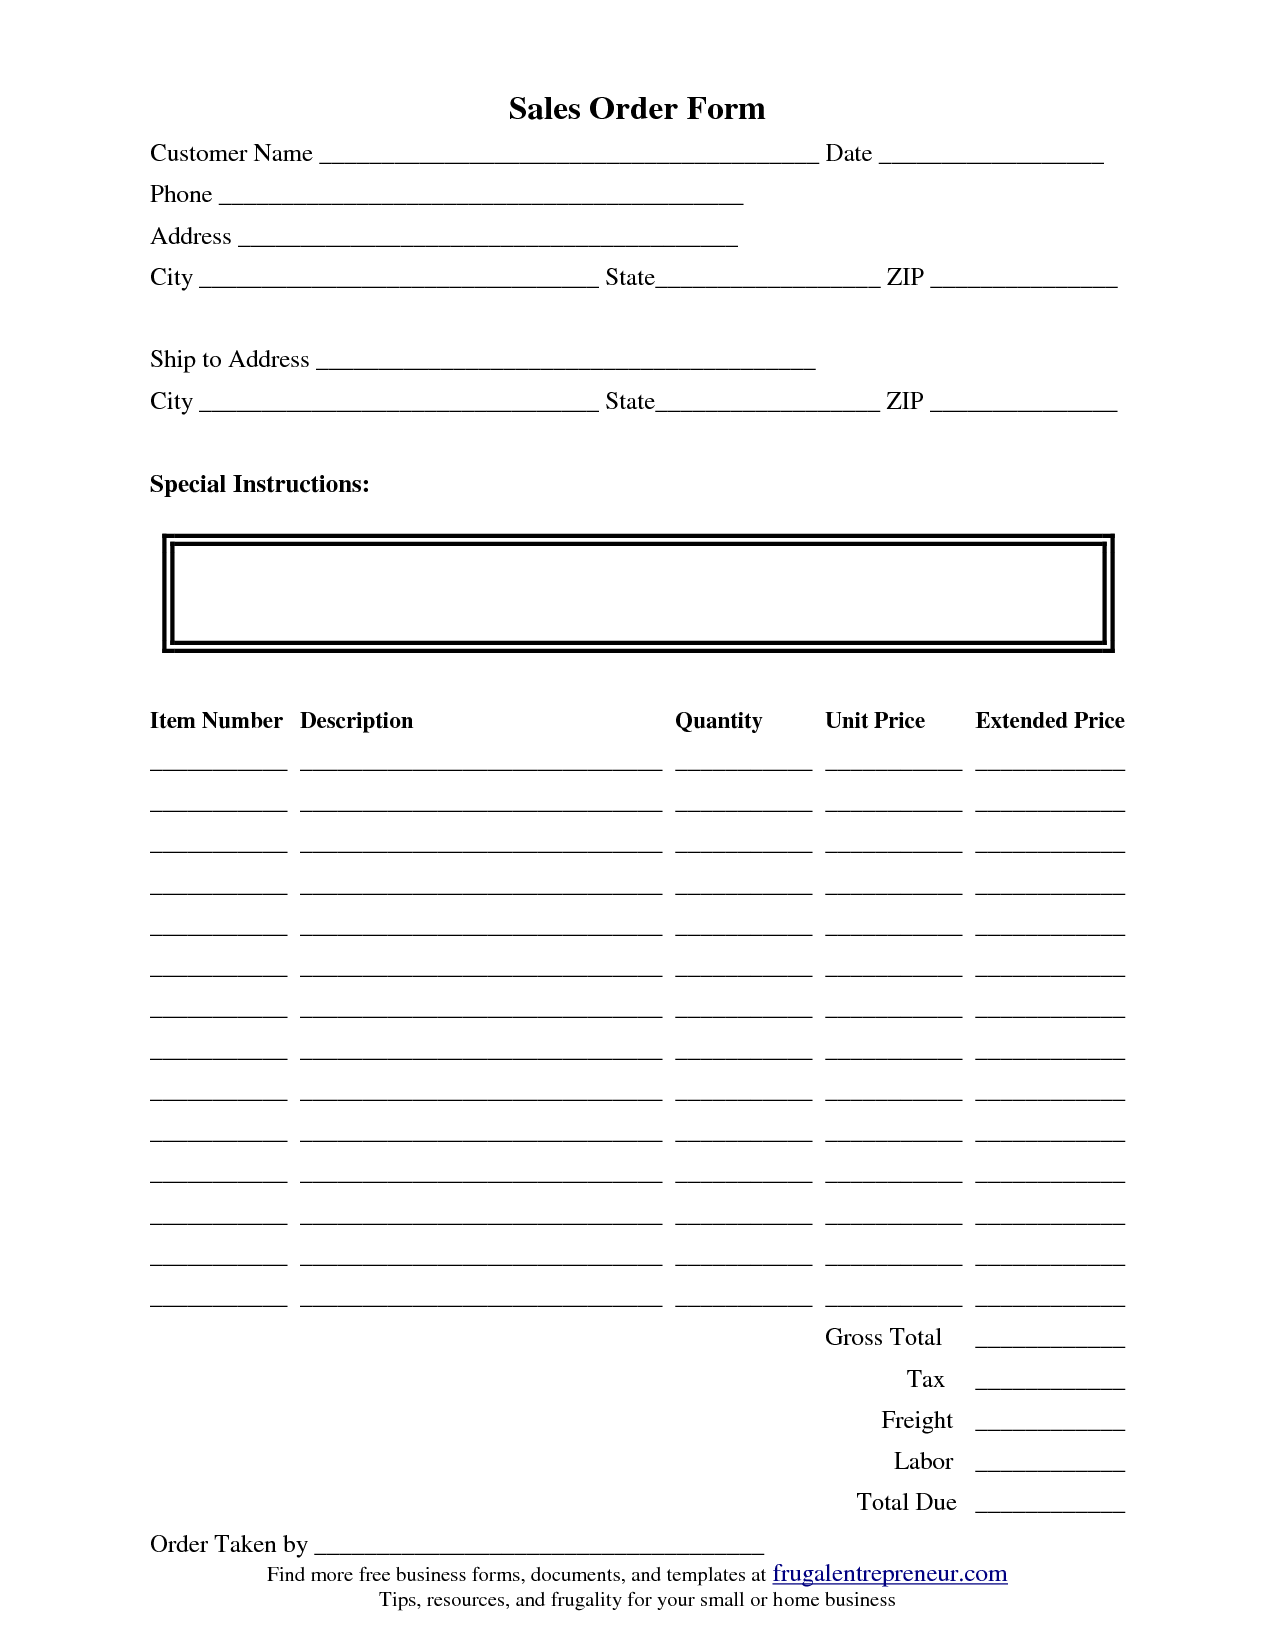 Scope Of Work Template  Order Form    Order Form